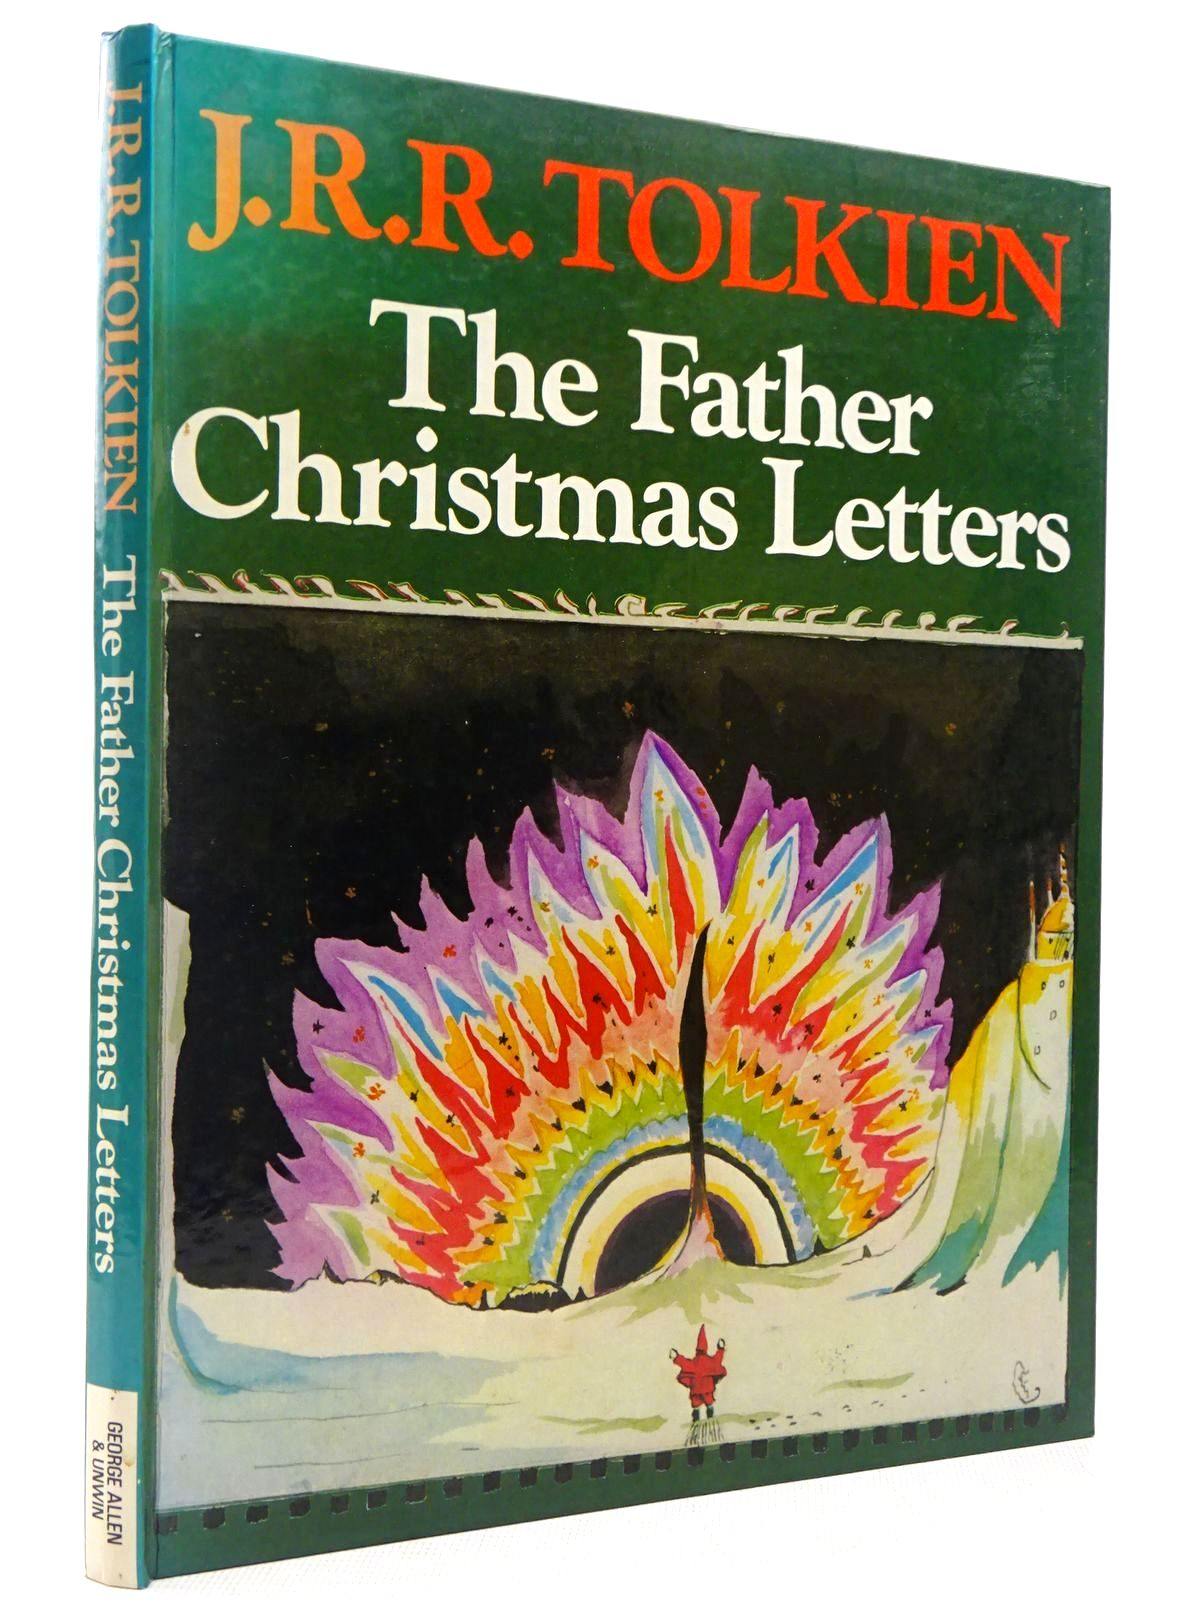 Photo of THE FATHER CHRISTMAS LETTERS written by Tolkien, J.R.R. illustrated by Tolkien, J.R.R. published by George Allen & Unwin Ltd. (STOCK CODE: 2129342)  for sale by Stella & Rose's Books